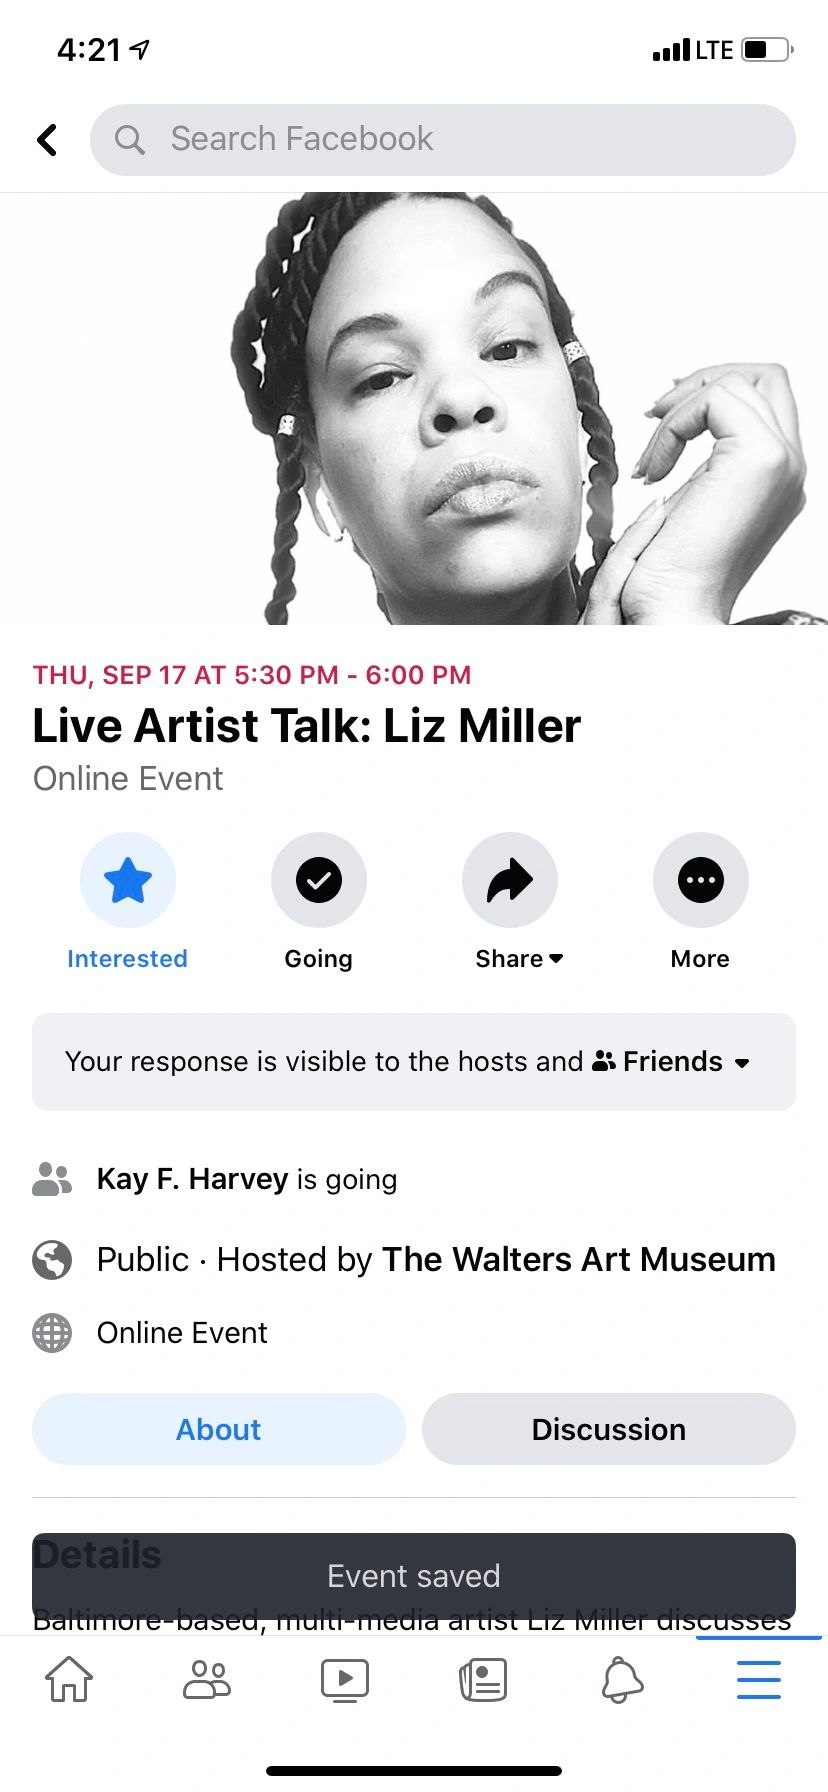 Rescheduled to 12/3/2020- will be on the walters art museum fb page live